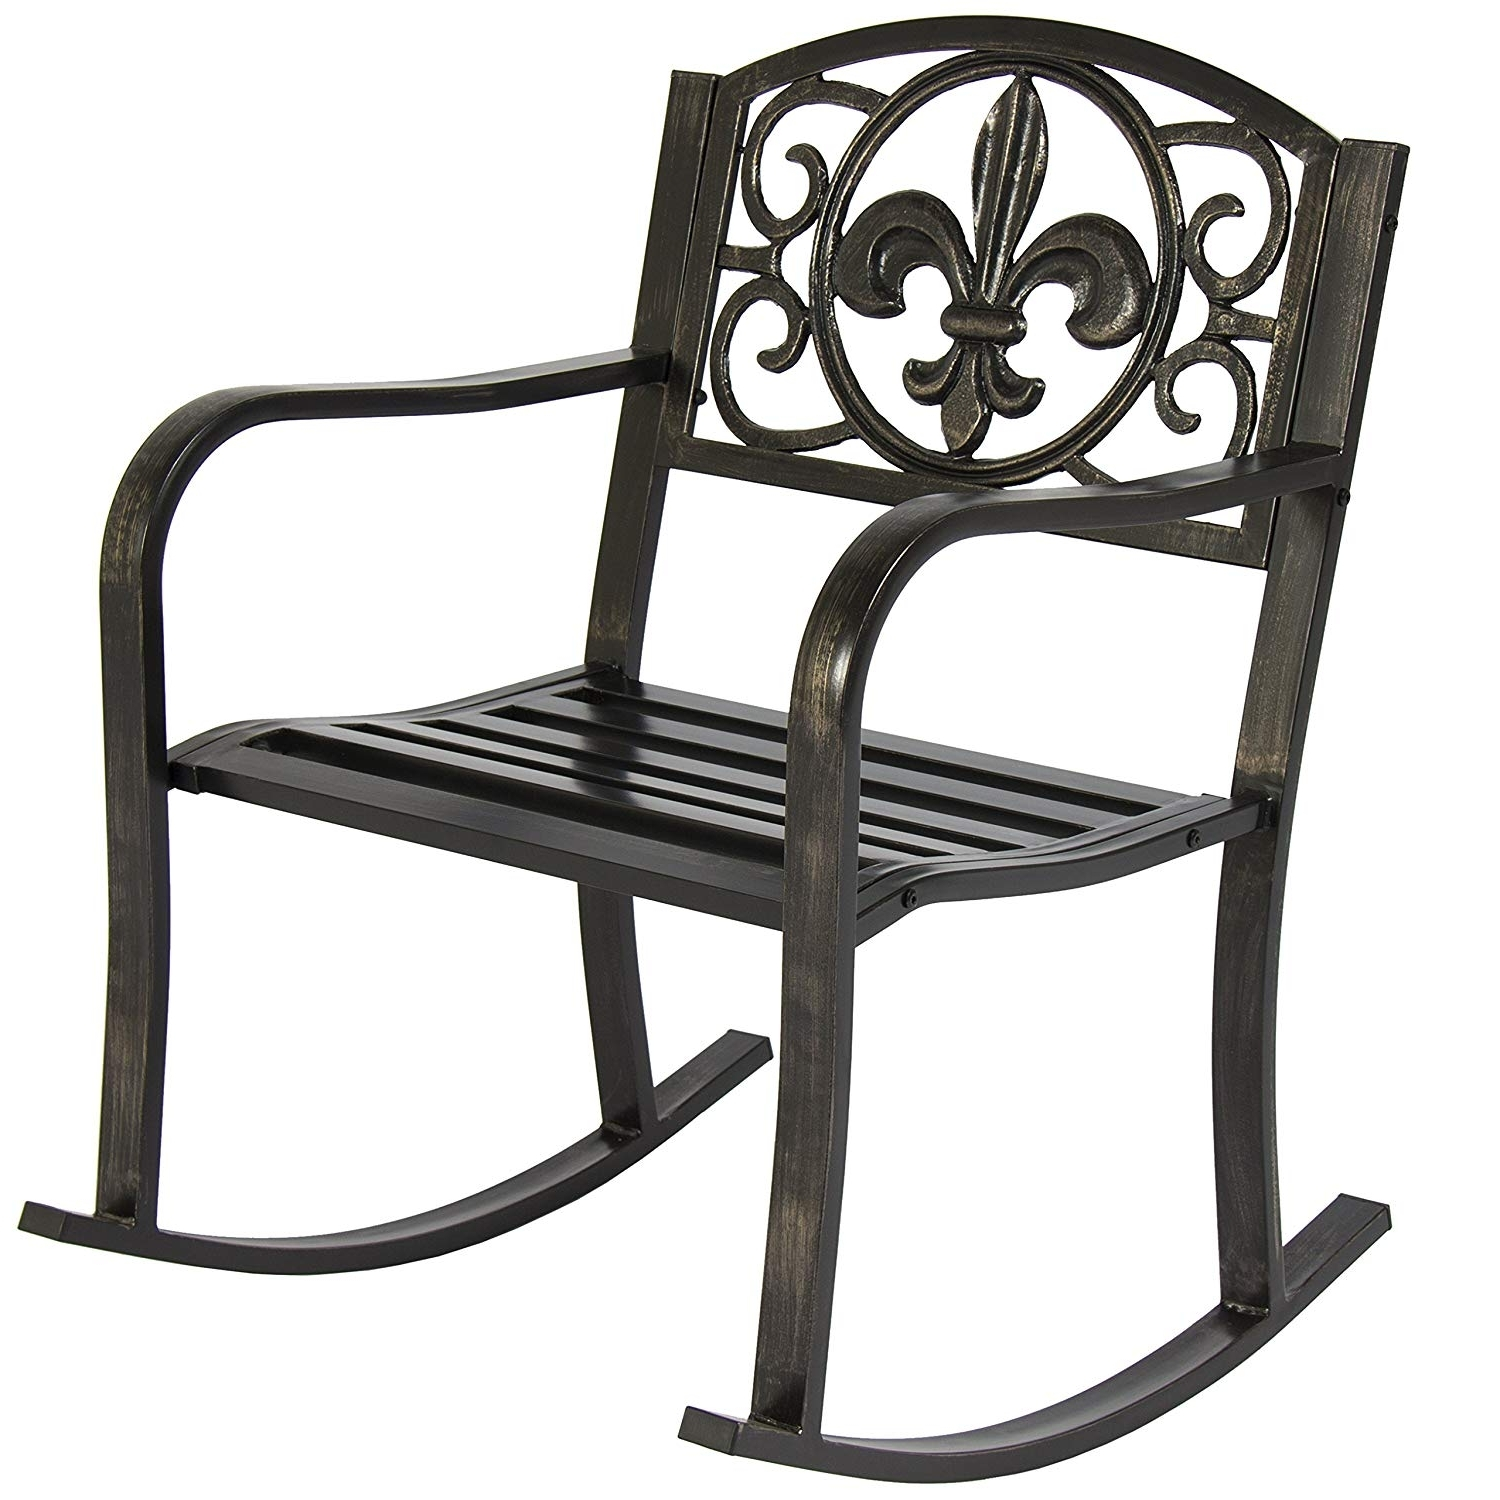 Preferred Amazon : Best Choice Products Metal Rocking Chair Seat For Patio With Regard To Vintage Metal Rocking Patio Chairs (View 6 of 15)